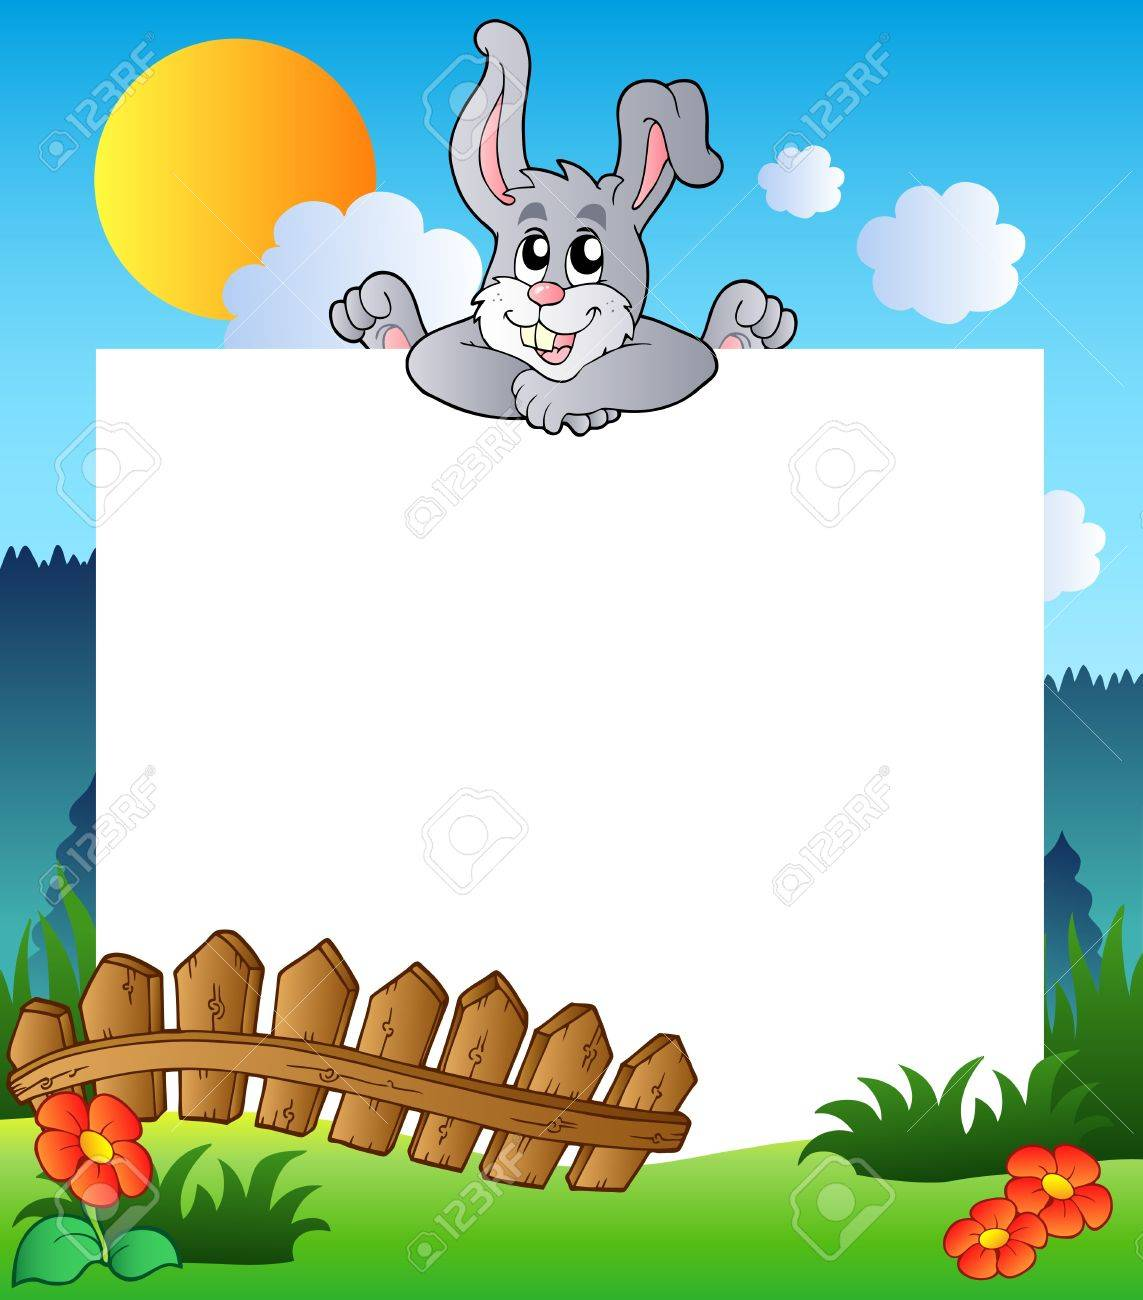 Easter Frame With Lurking Bunny Royalty Free Cliparts, Vectors, And ...